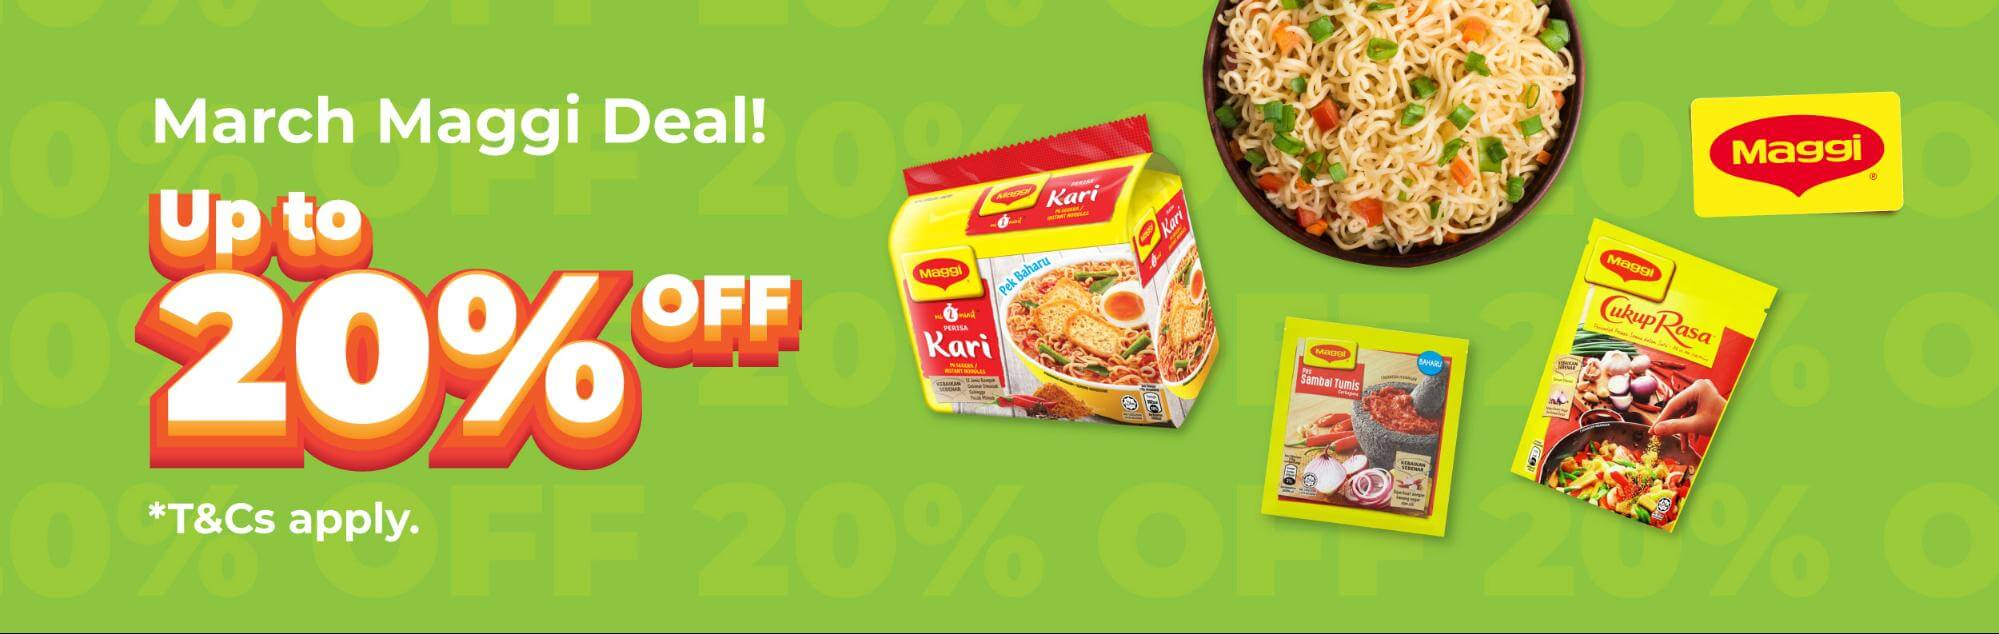 Maggi March Up to 20% OFF